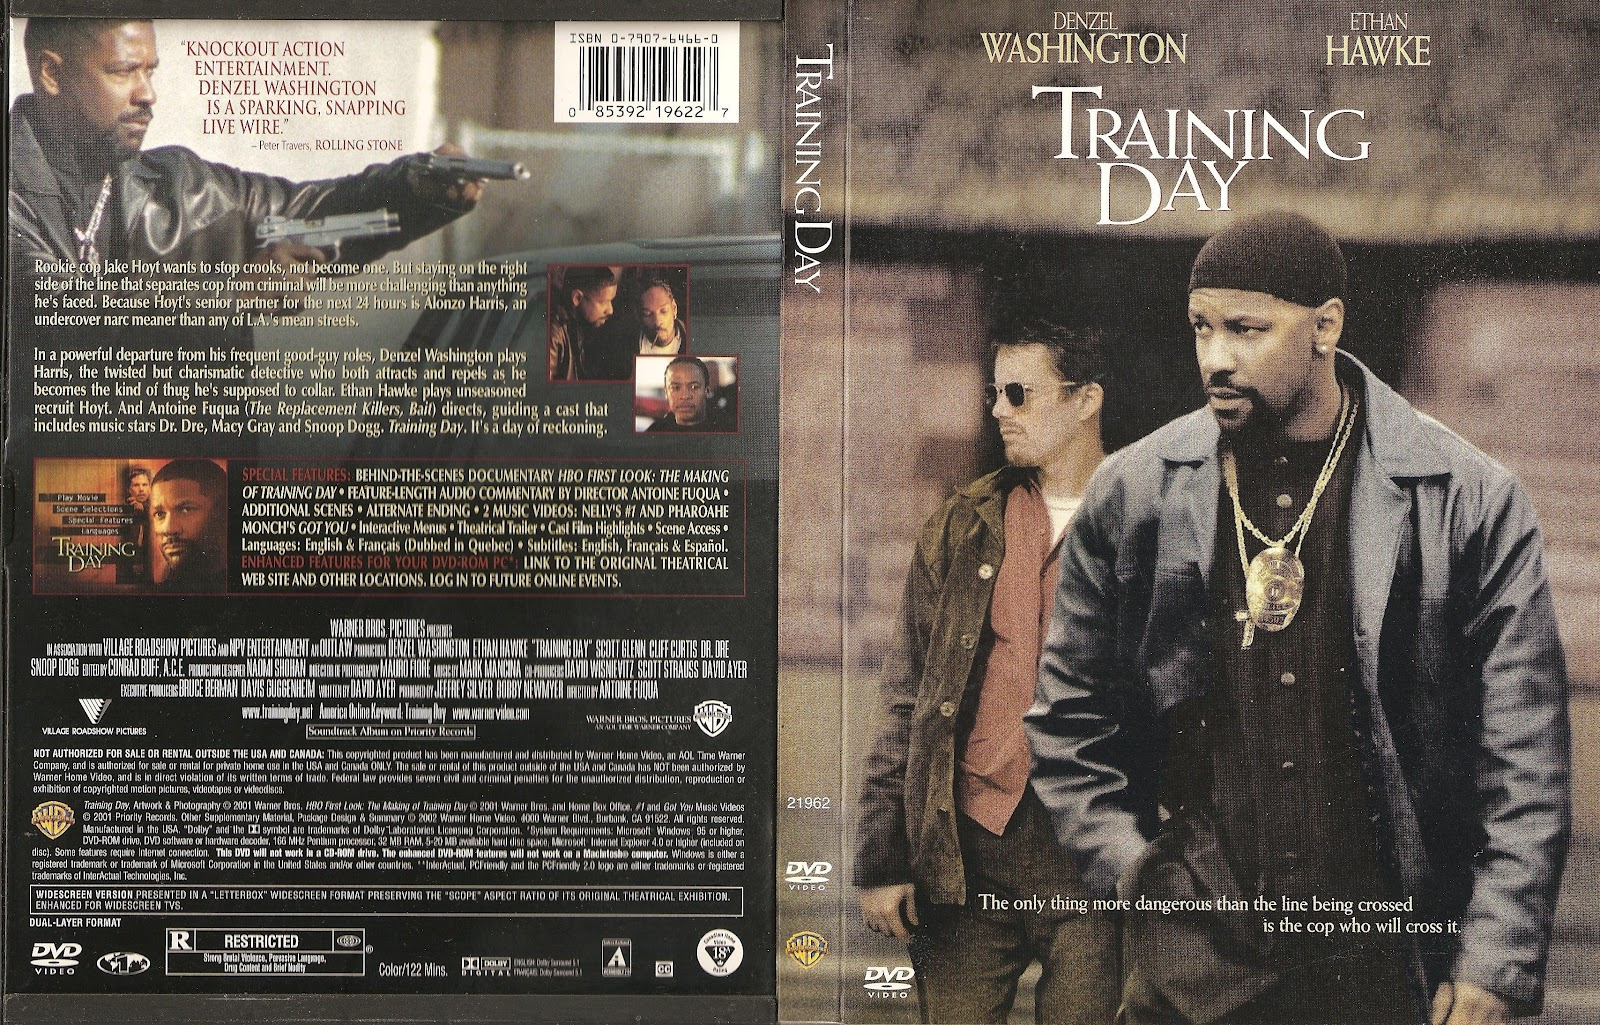 Training Day (2001) | Movie Poster and DVD Cover Art